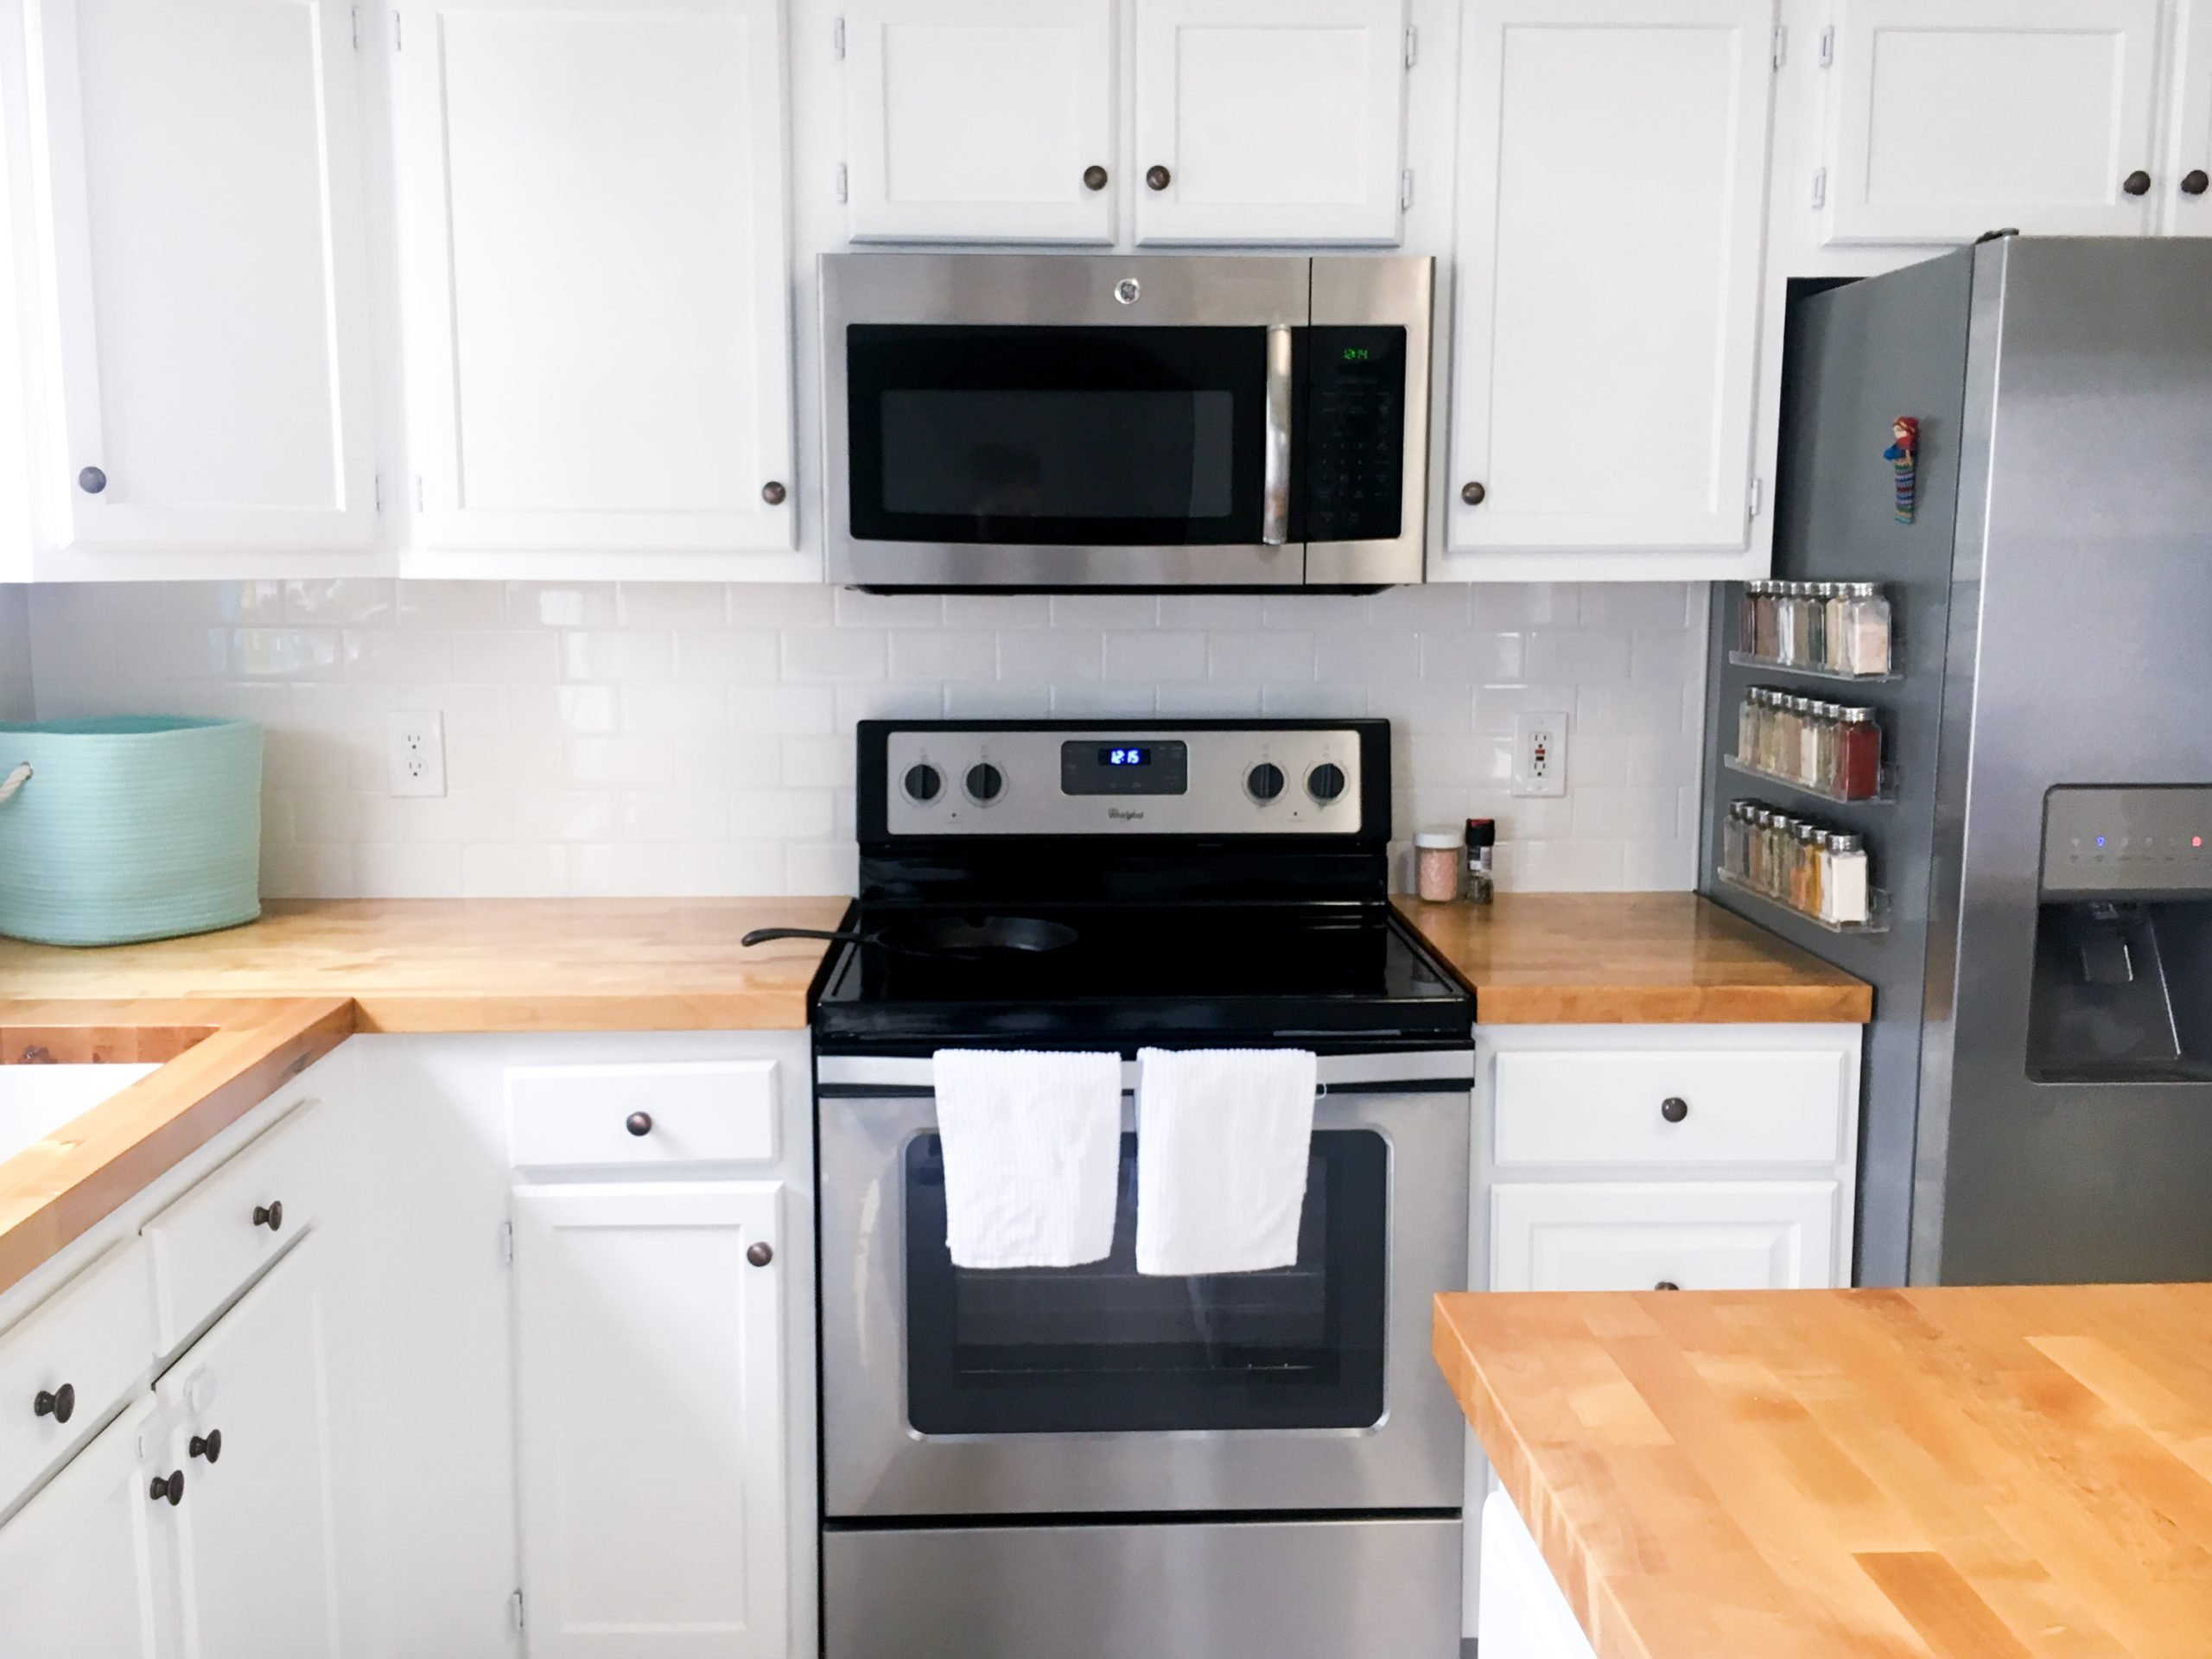 a diy mini kitchen remodel left this kitchen looking fresh and uncluttered. white cabinets, butcher block counters, stainless appliances, and subway tile bnacksplash.